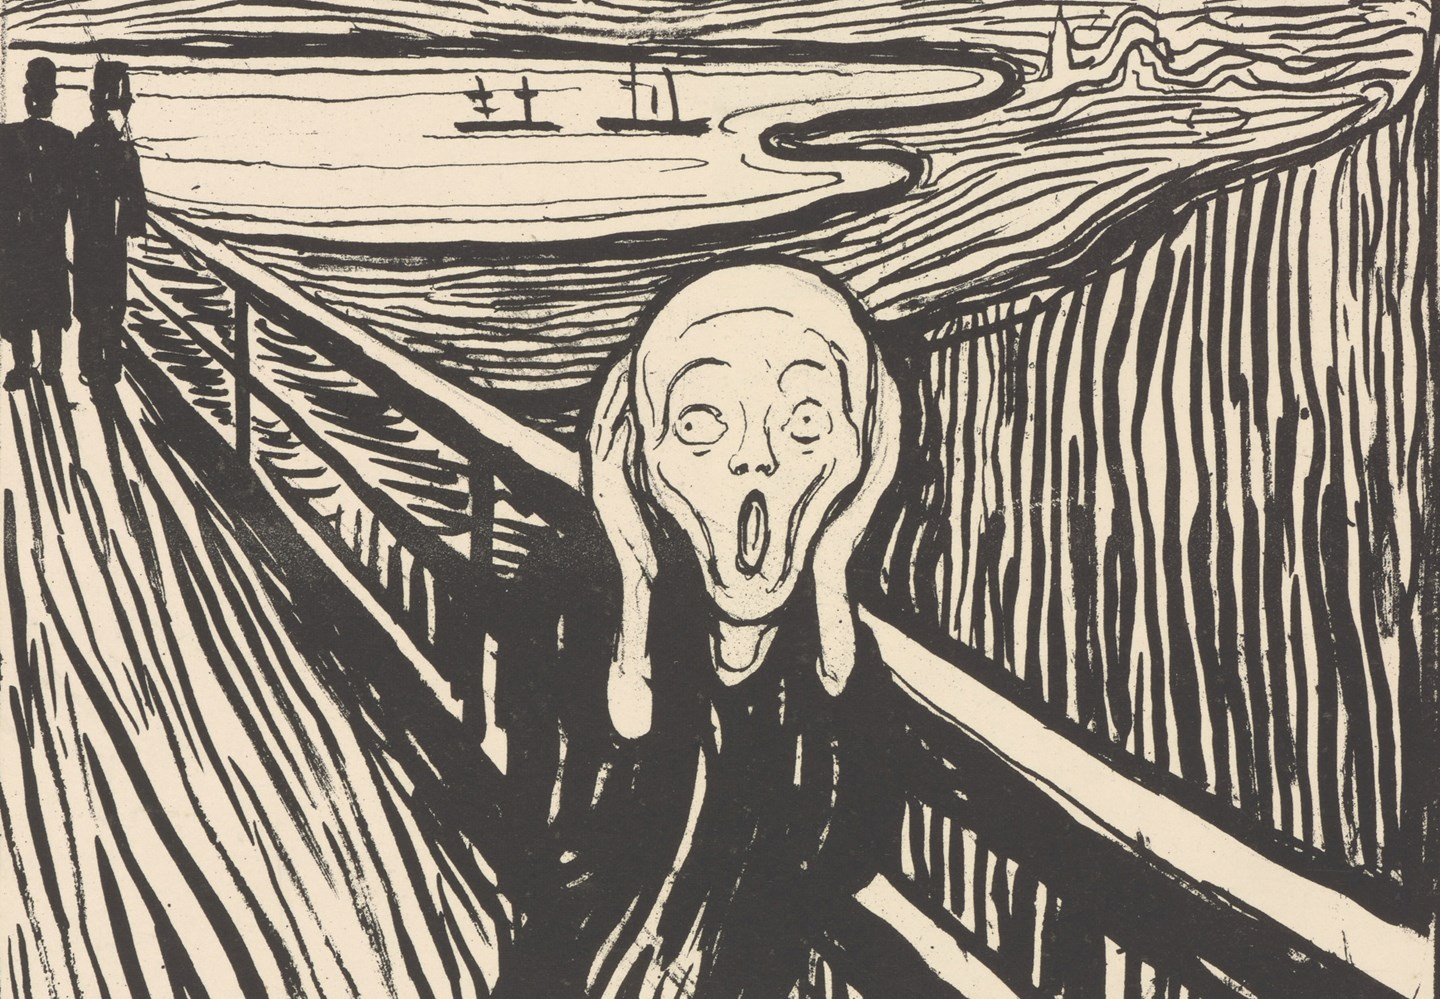 Crop of Edvard Munch: The Scream. Lithograph, 1895. Photo © Munchmuseet